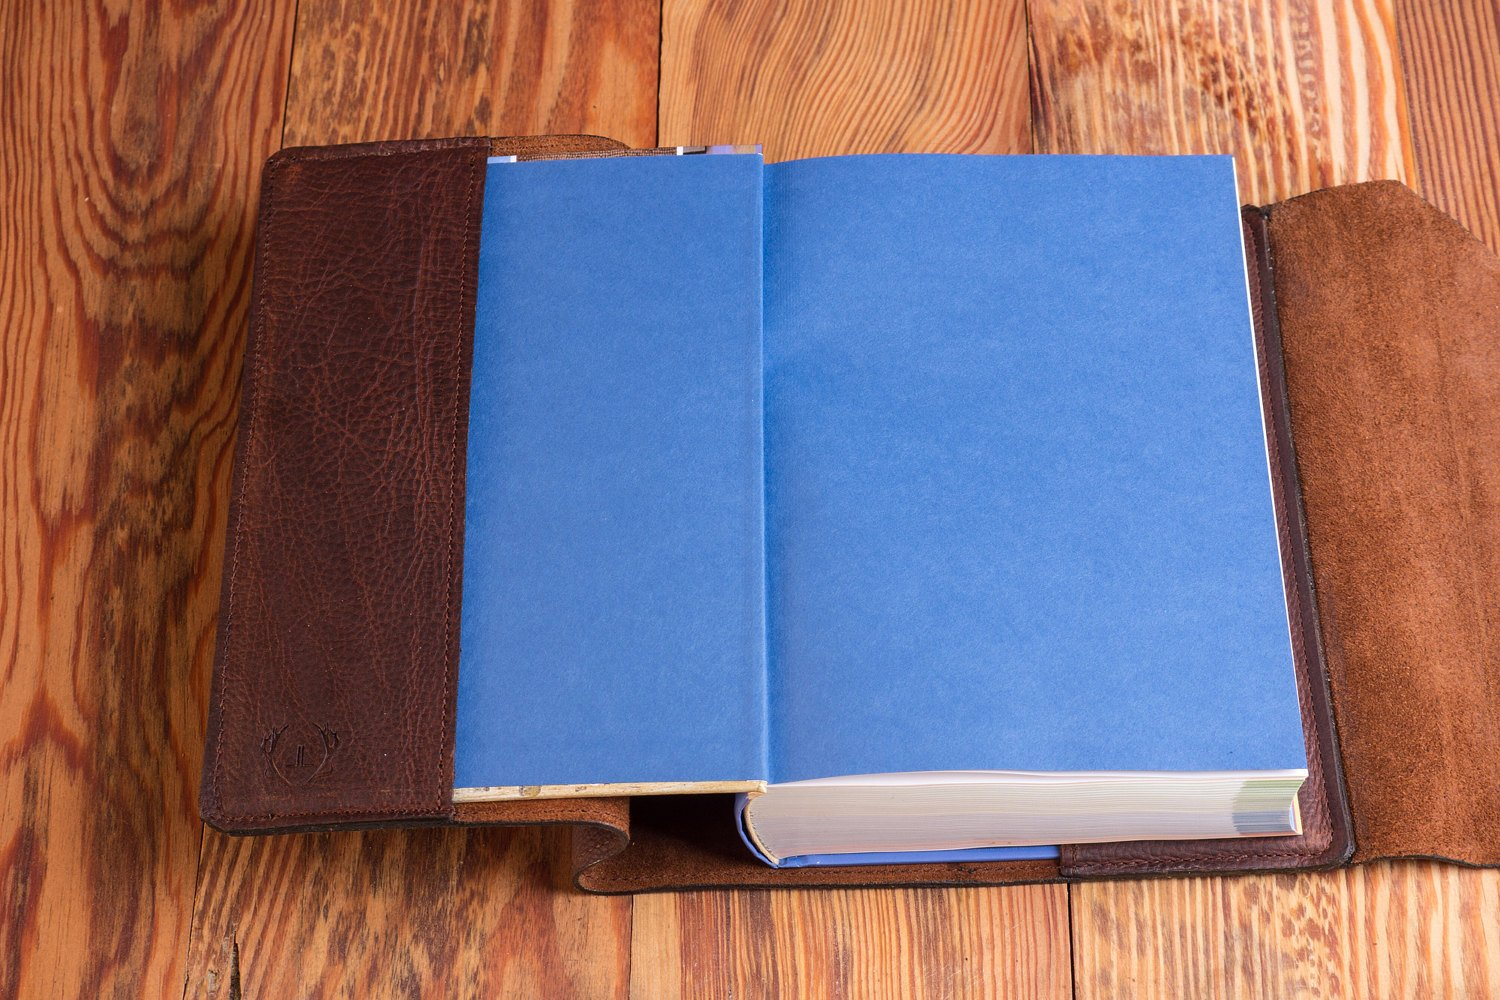 Leather Bible Cover, Leather Book Cover, Leather Cover#1s